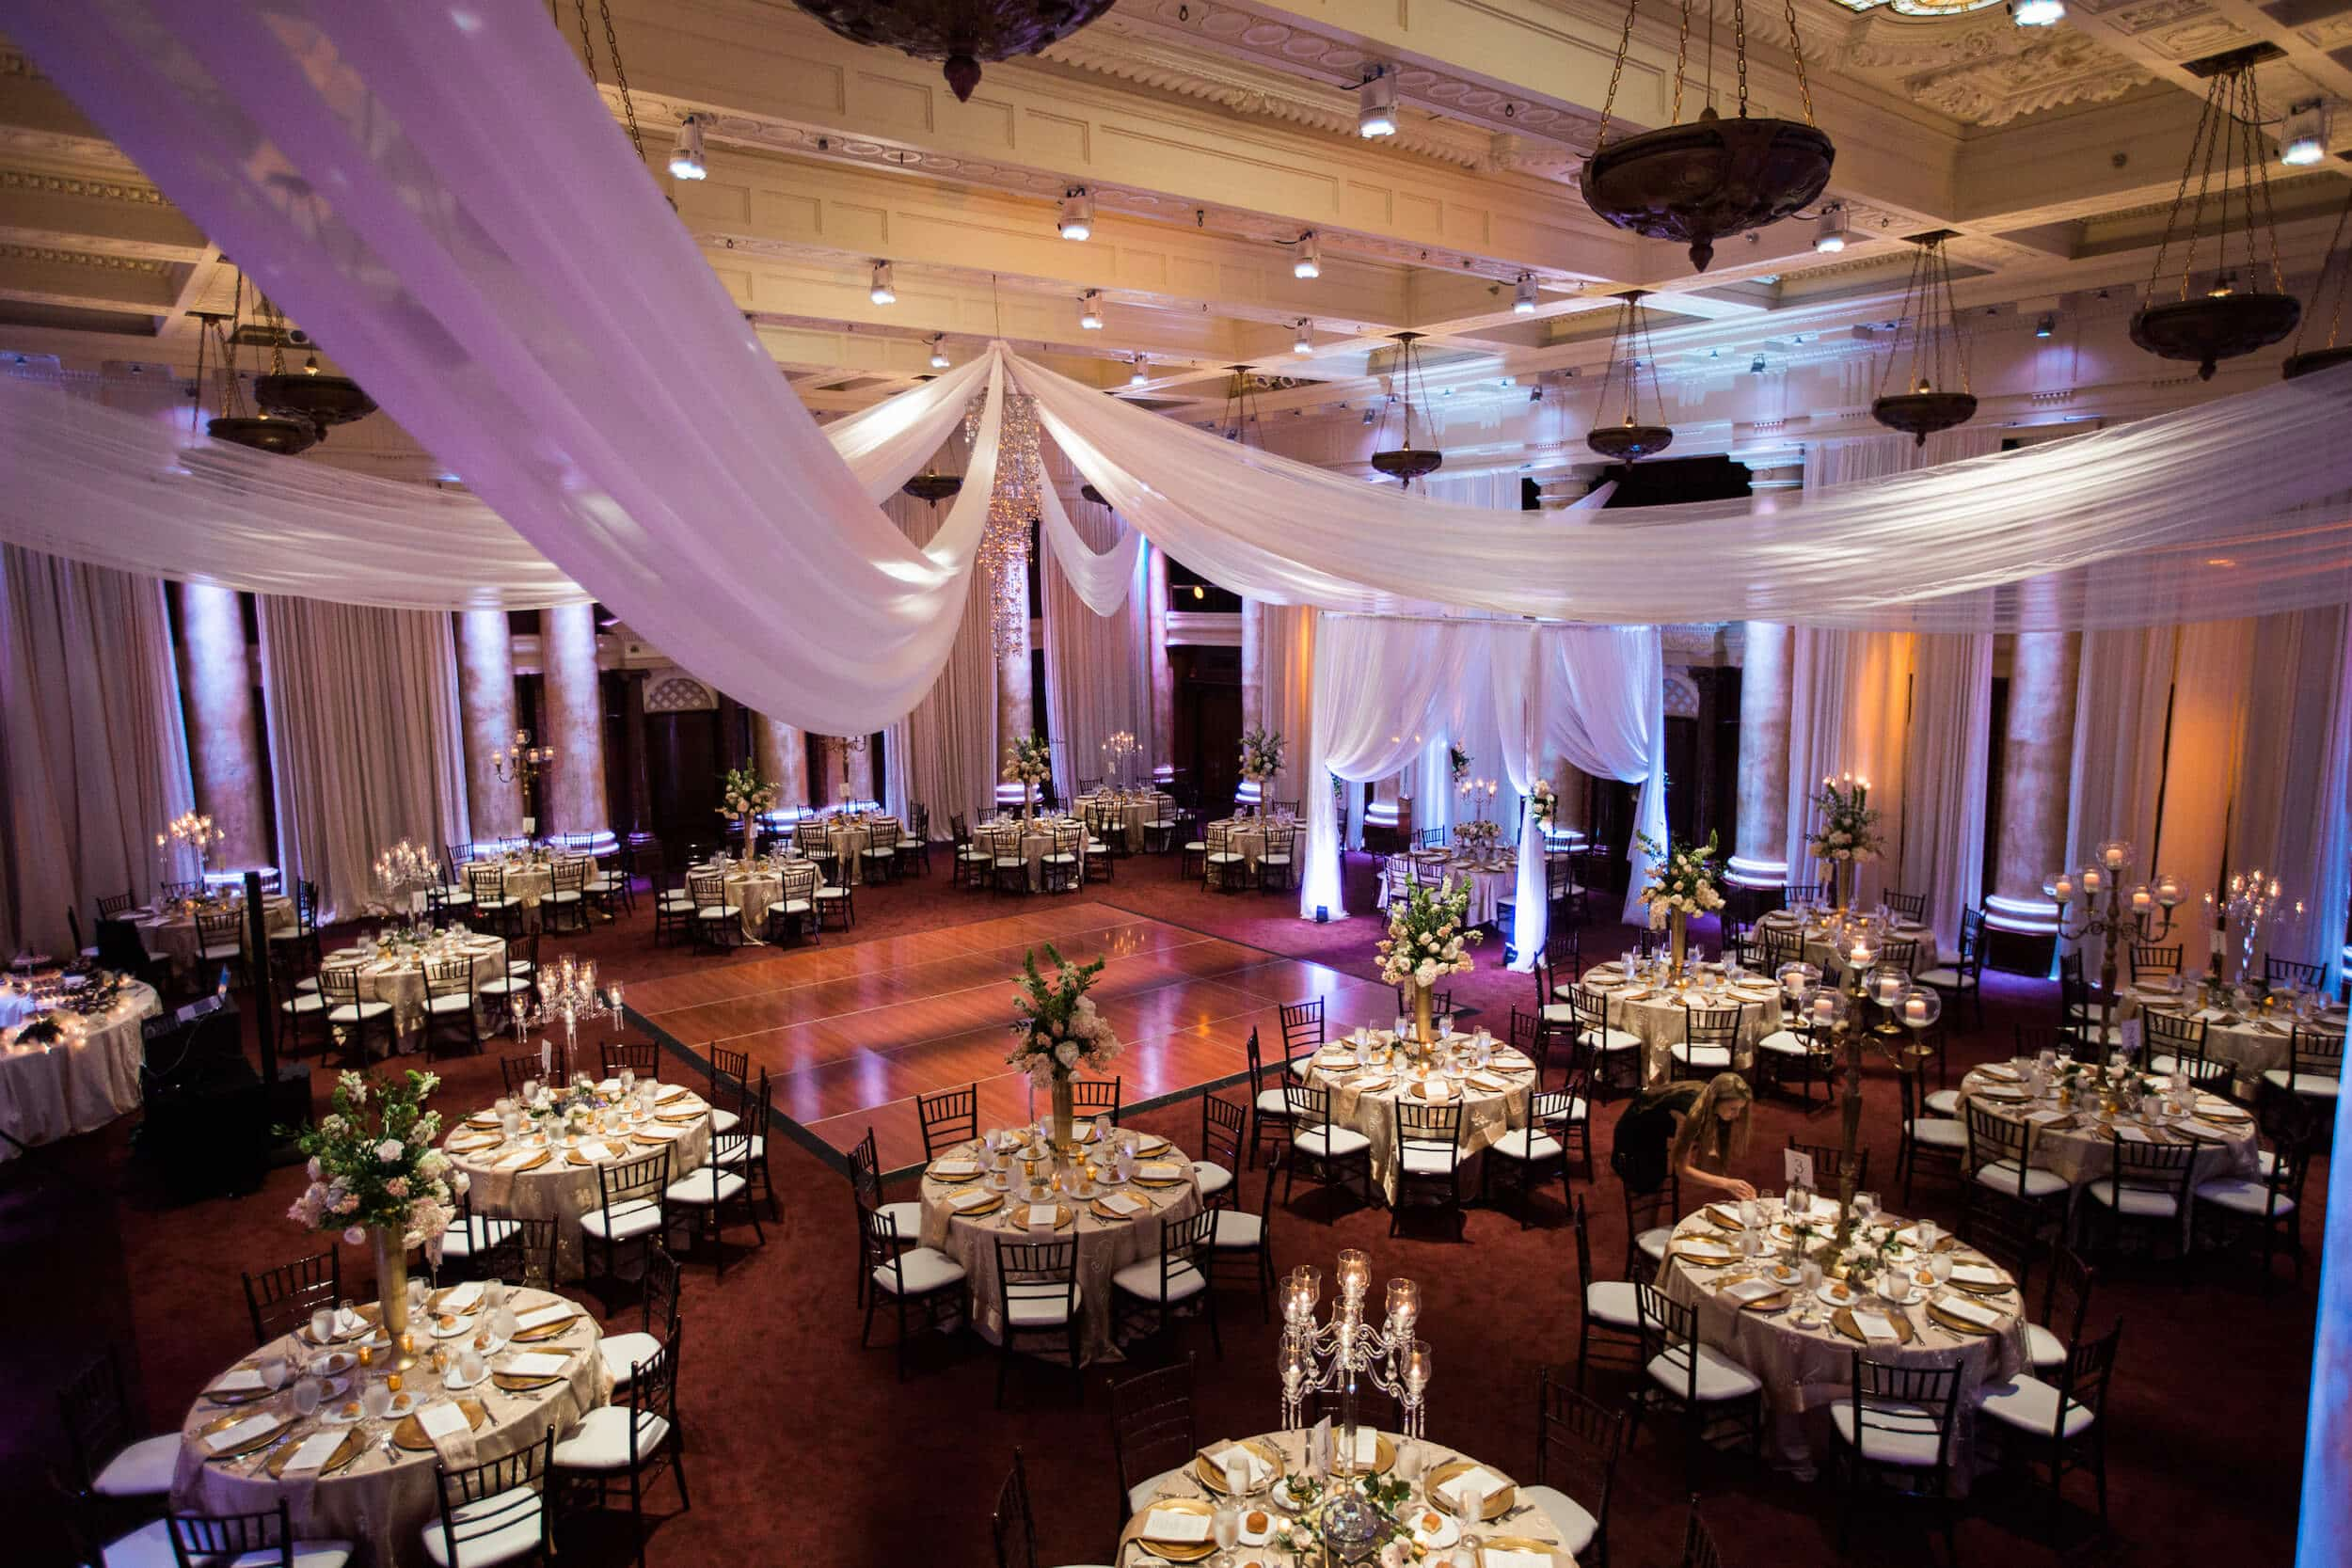 temple for performing arts grand ballroom